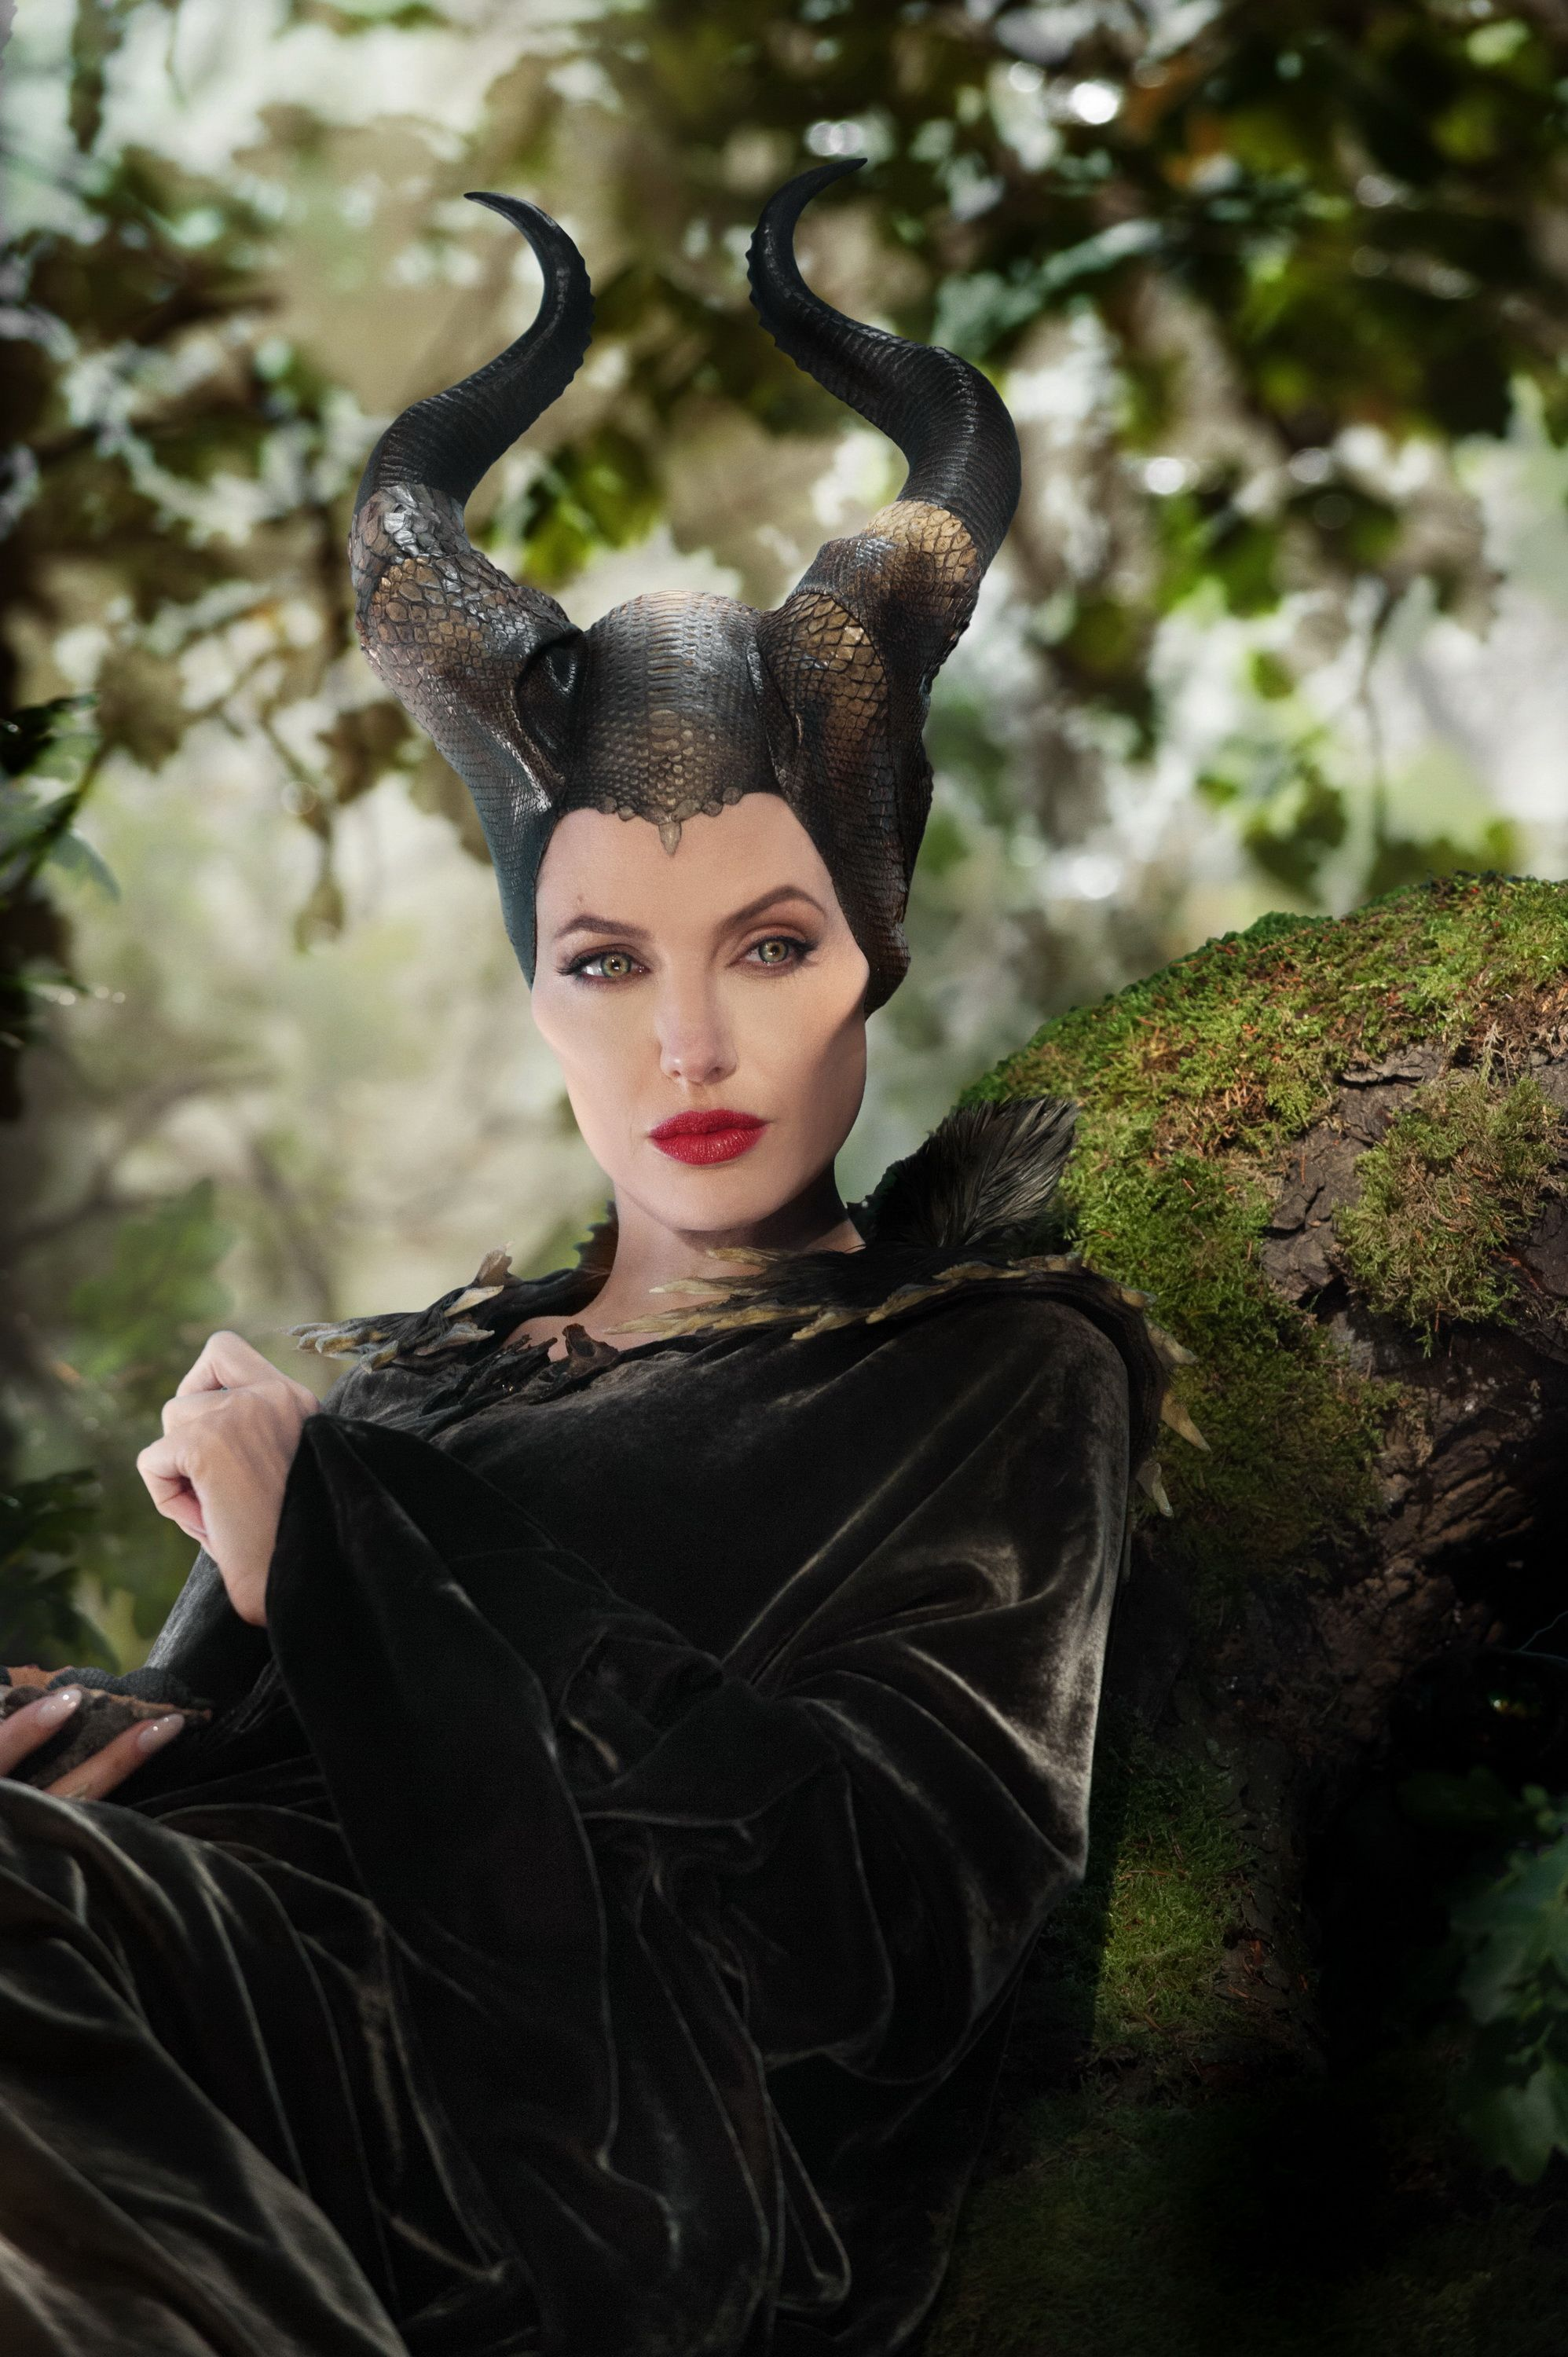 Angelina jolie is not a wicked witch according to angelina jolie - 2019 year